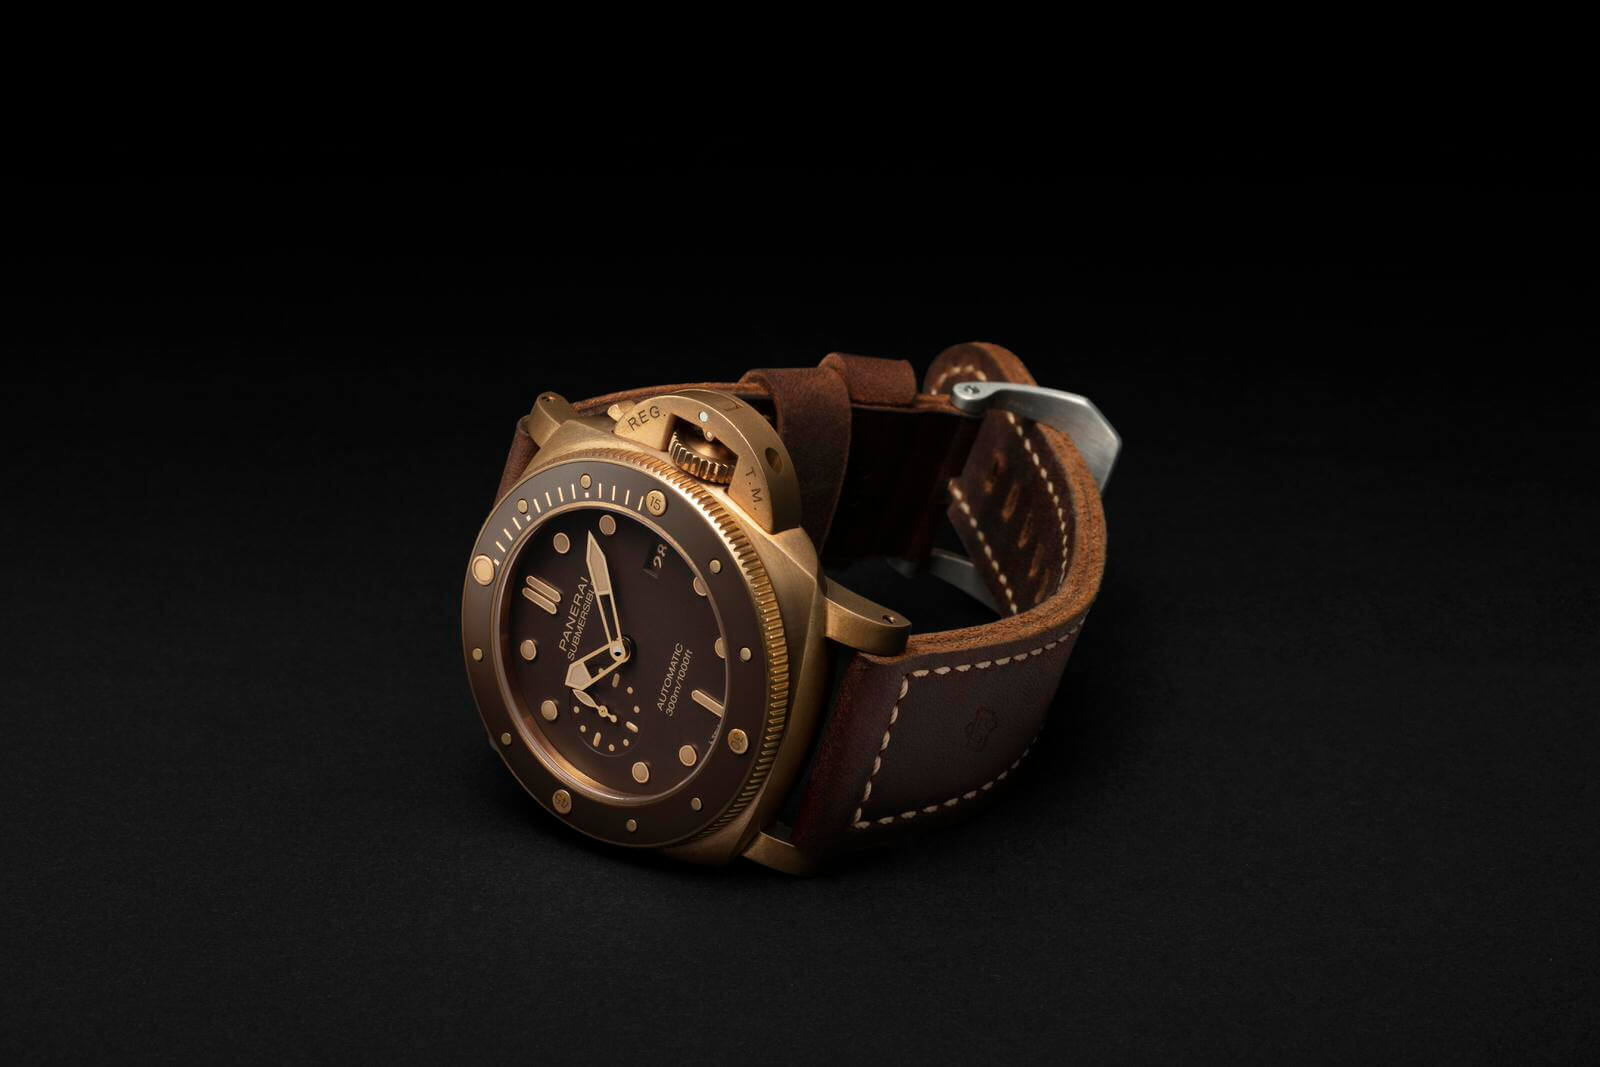 PANERAI SUBMERSIBLE BRONZO